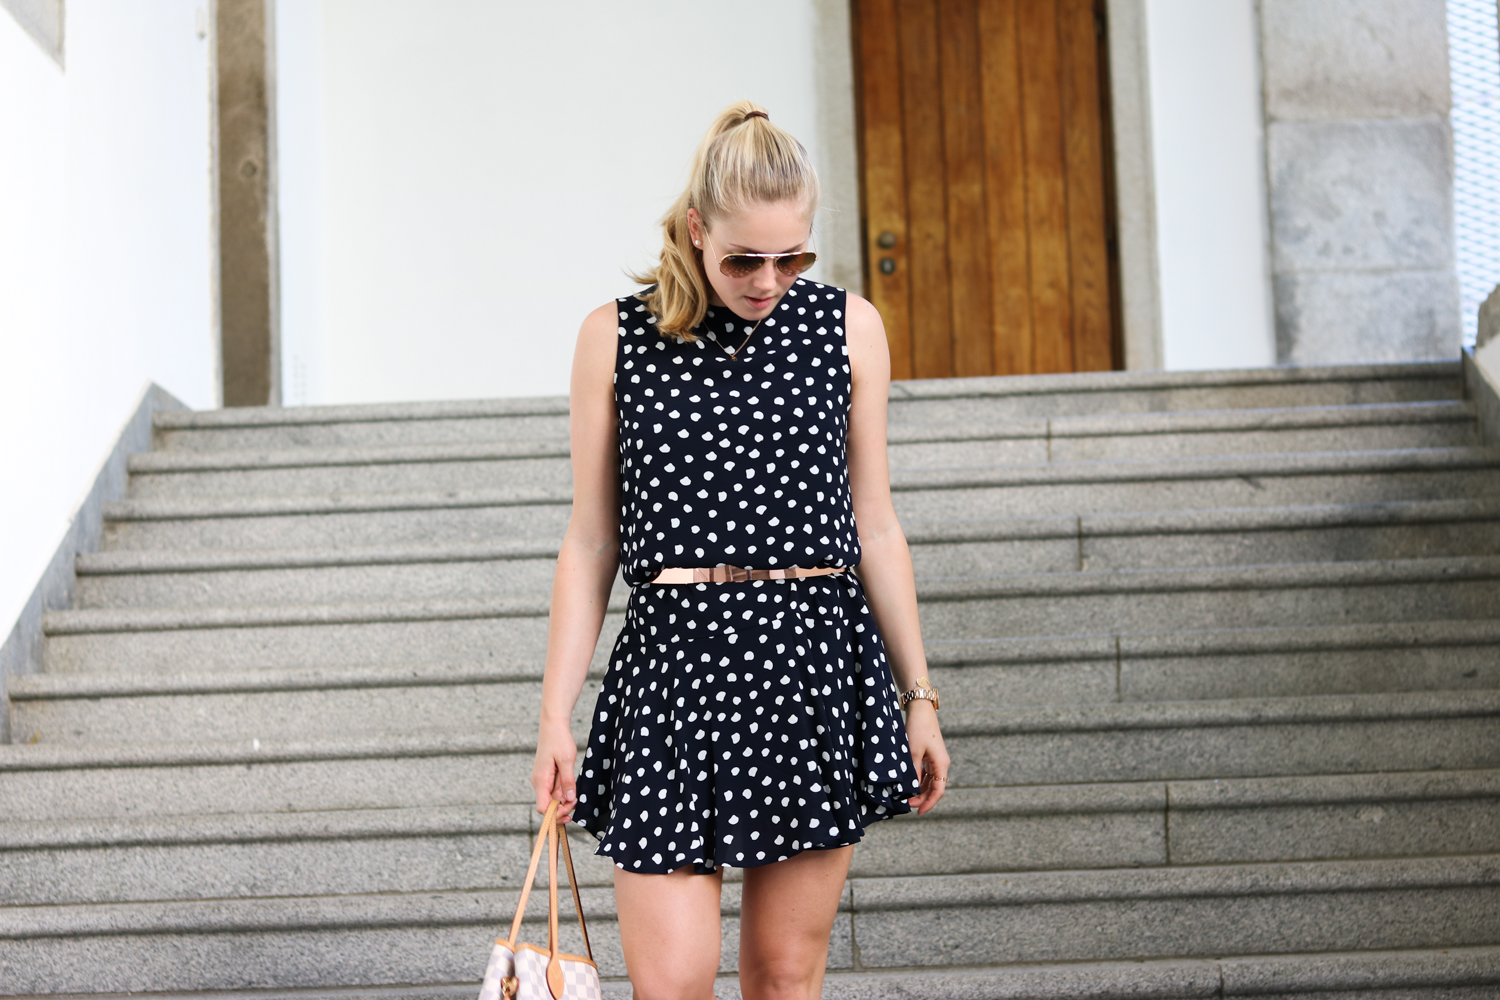 Bits and Bobs by Eva, Blog, Austrian Blog, Österreichische Blog, lovedailydose, your daily treat, fashion, beauty, food, interior, fitness, new, bitsandbobsbyeva.com, travel, spring, Mai, Frühling, Polka Dot Dress, gepunktetes Kleid, Mango, Sommer Outfit, Outfit Inspiration, summer outfit, summer dress